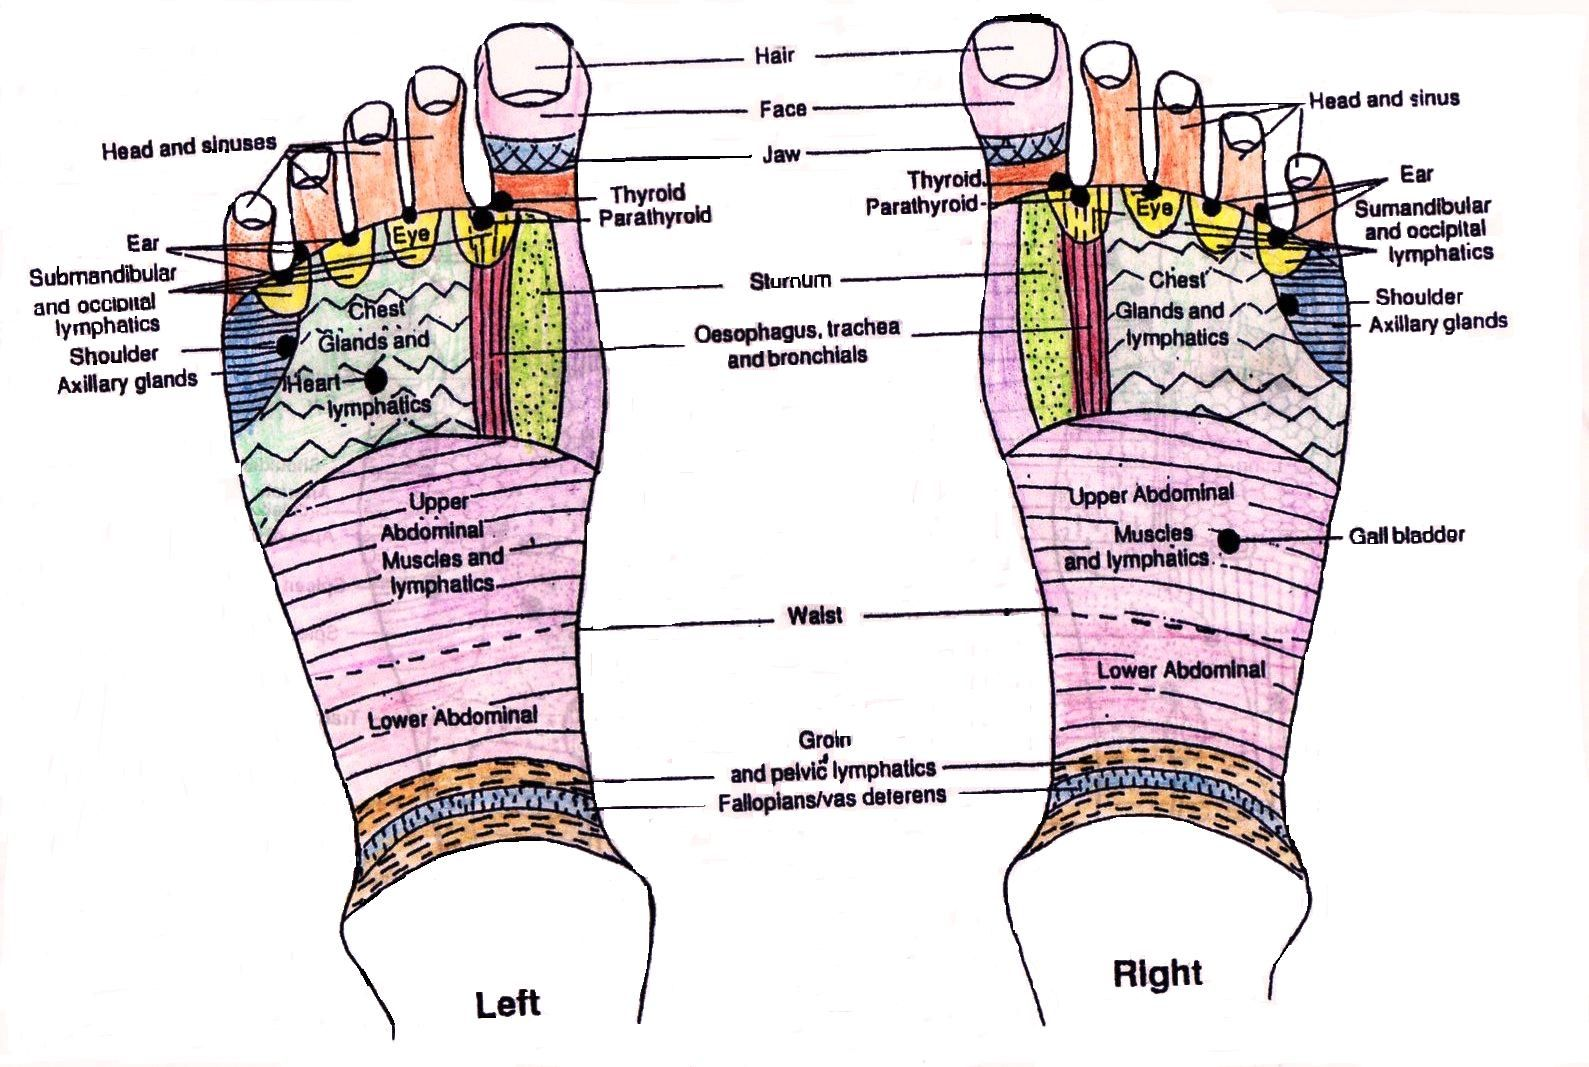 Foot Reflexology Points | Reflexology Foot Map ...